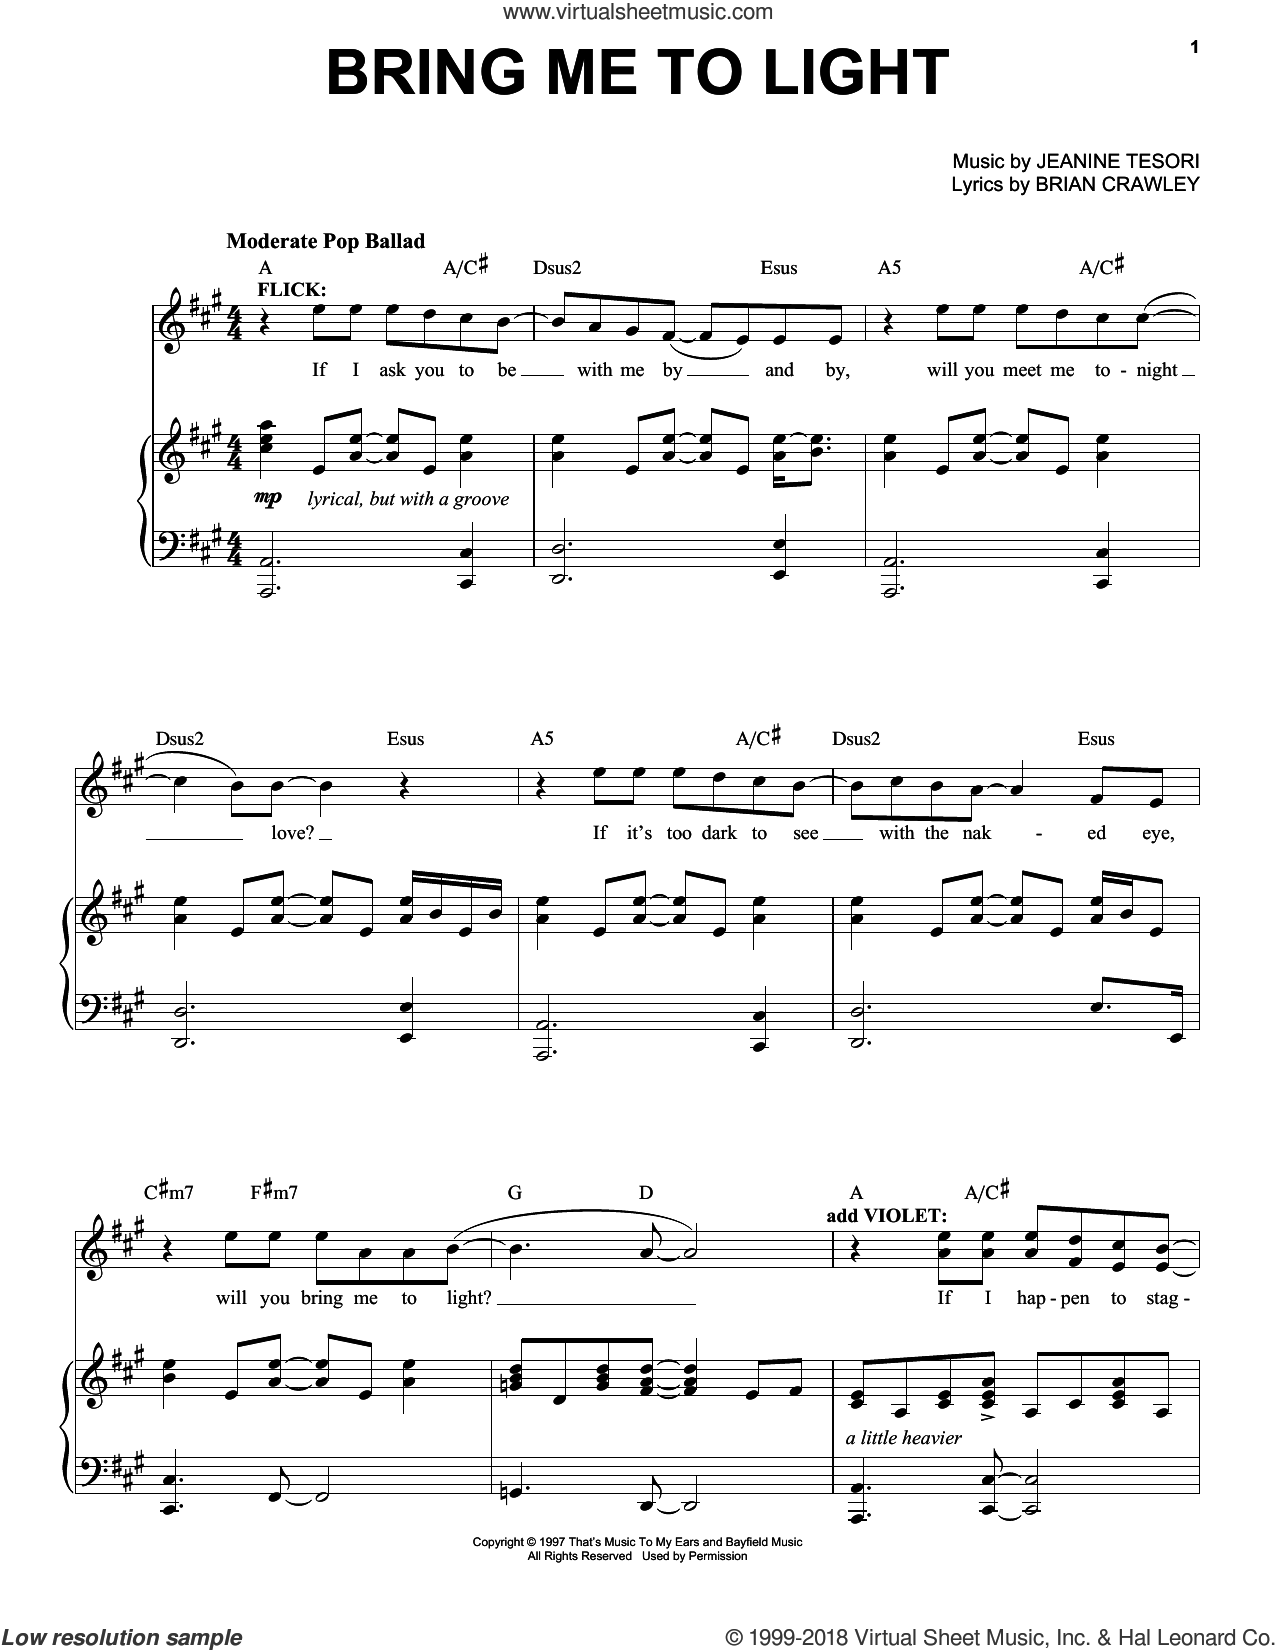 Bring Me To Light sheet music for voice and piano by Jeanine Tesori. Score Image Preview.